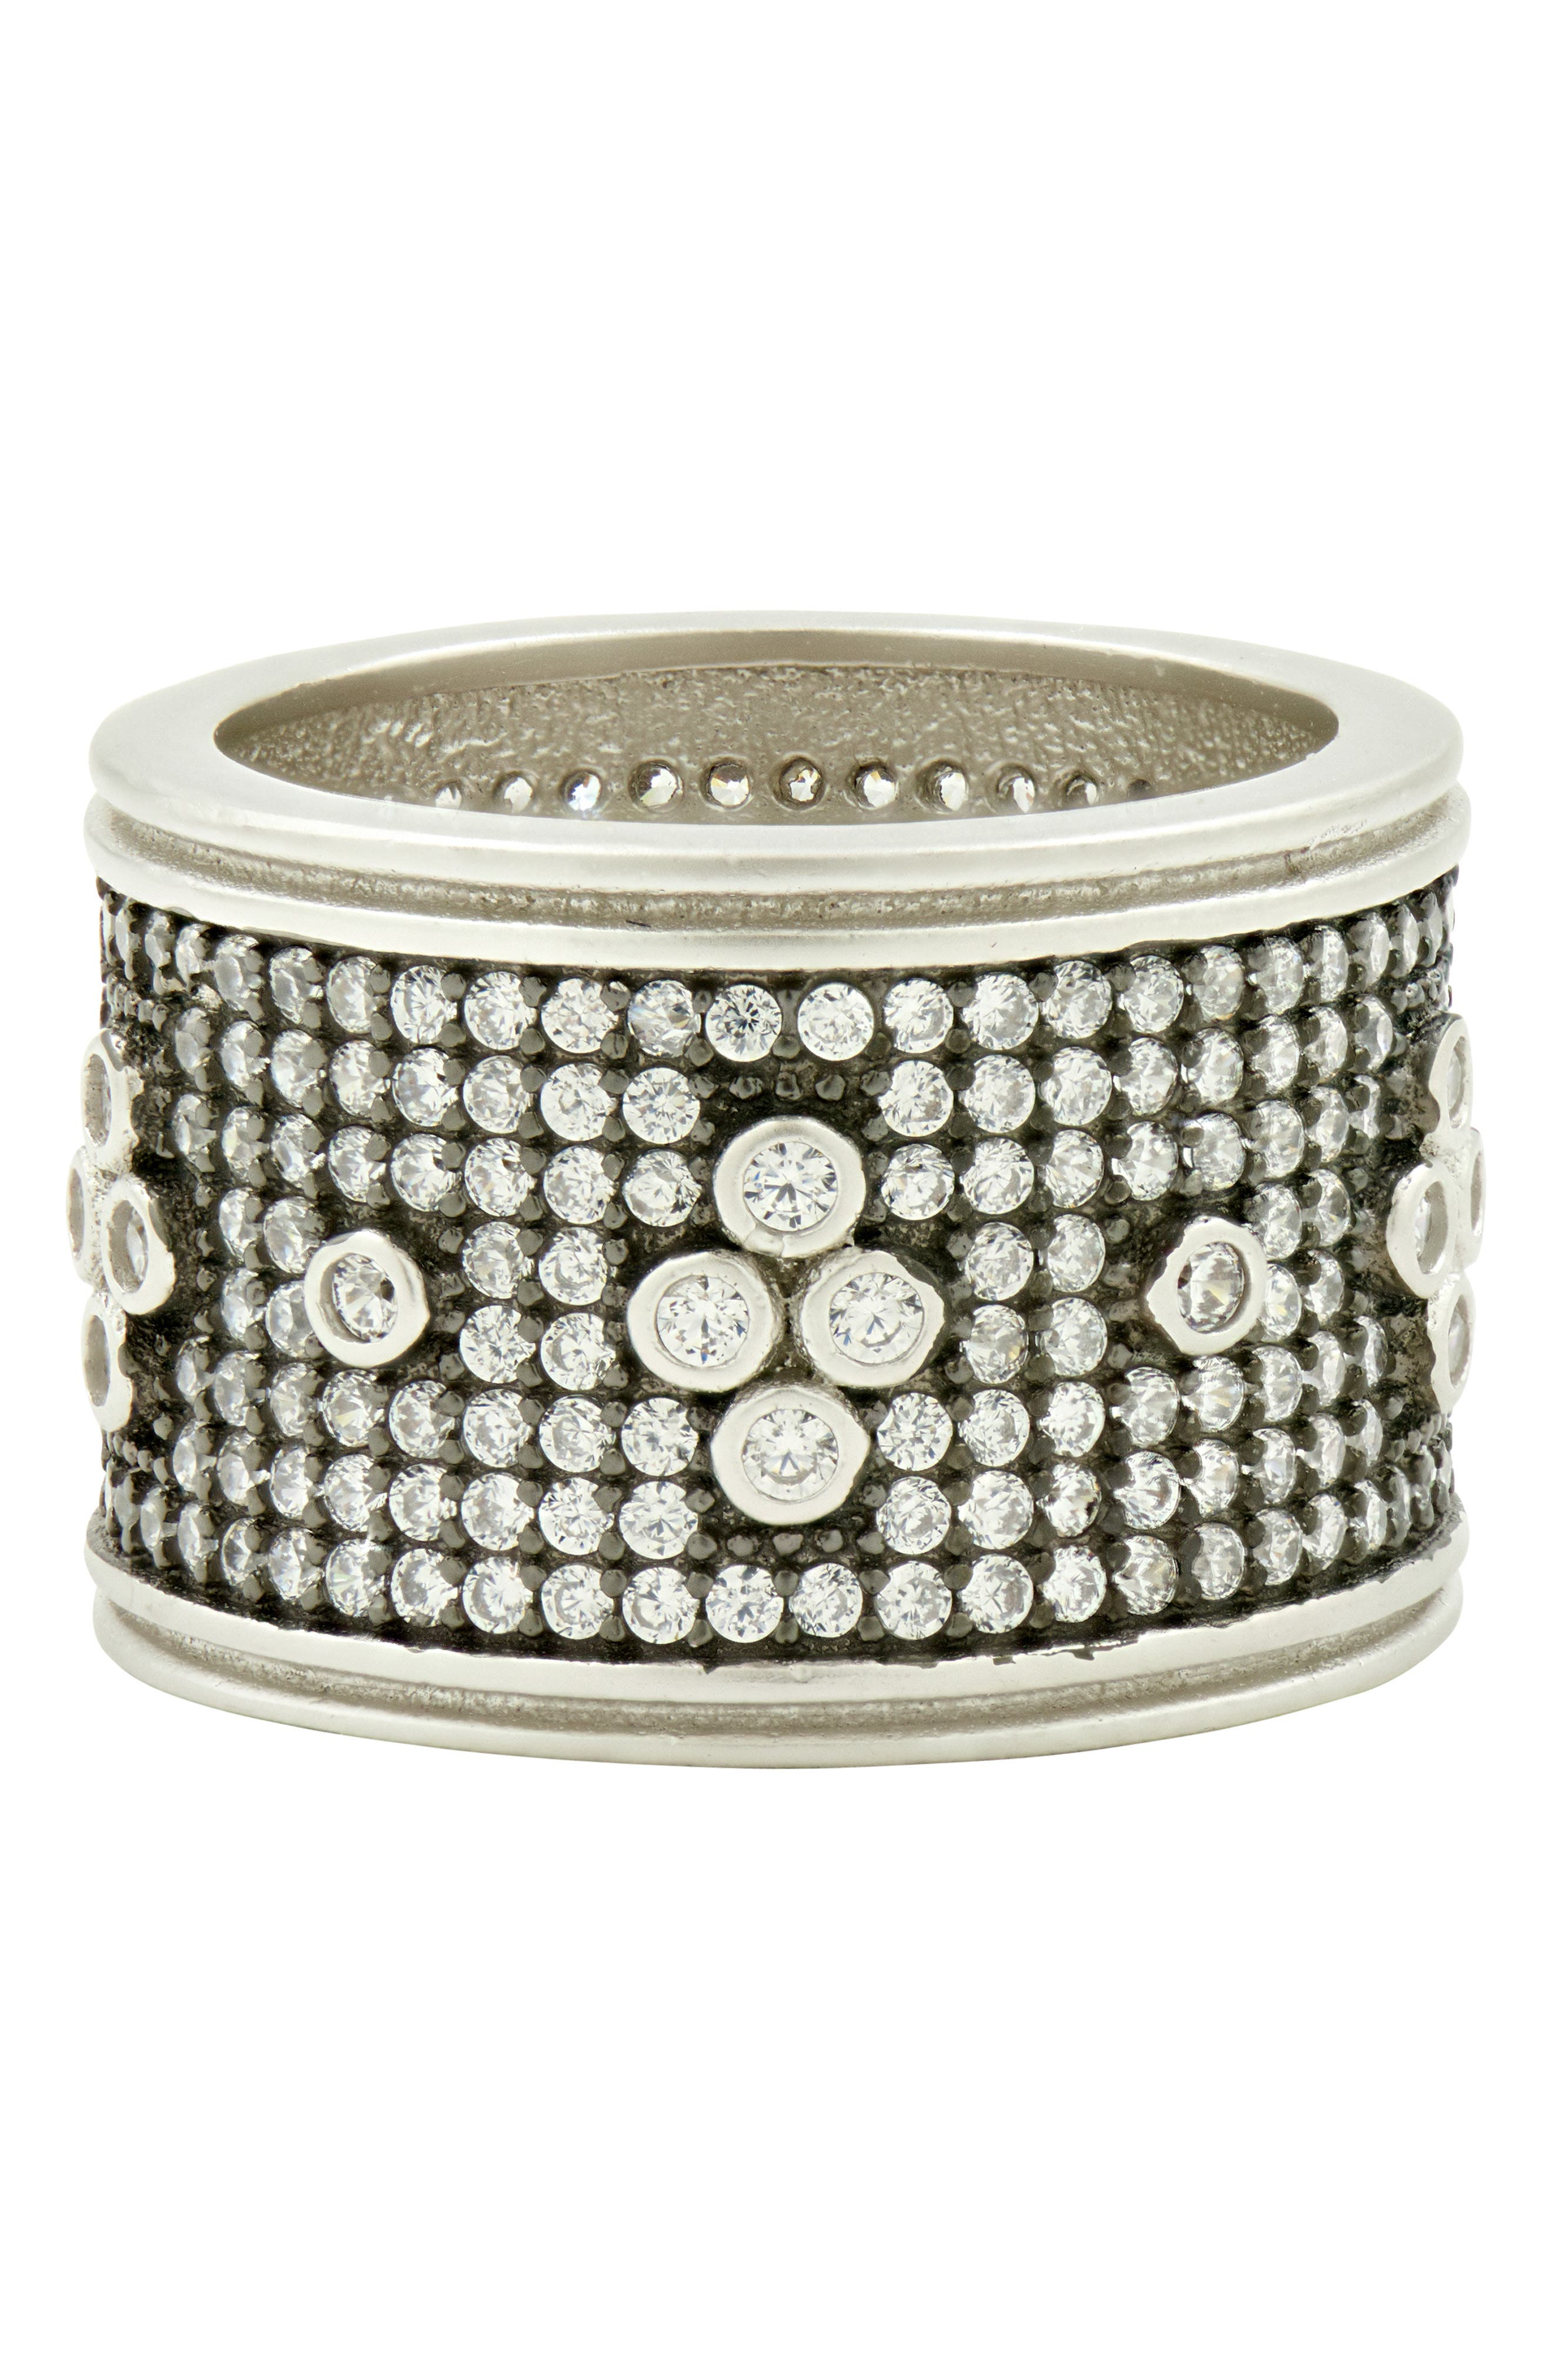 Clover Wide Band Ring,                             Main thumbnail 1, color,                             BLACK/ WHITE/ SILVER